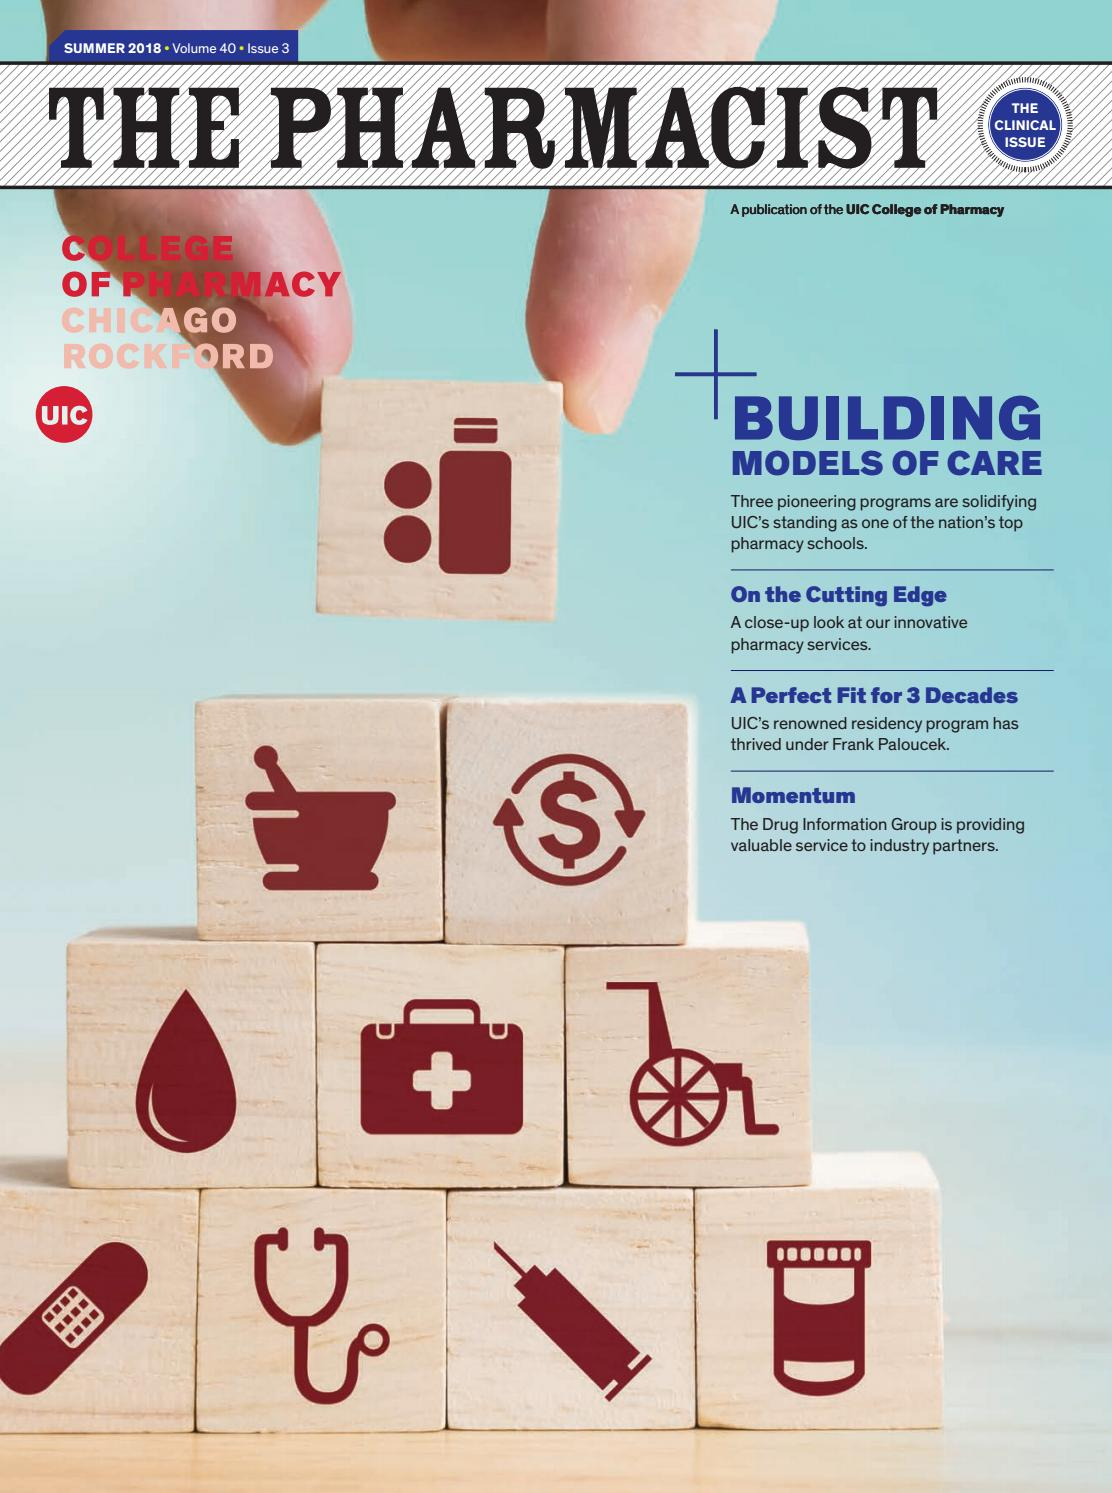 The Pharmacist - The Clinical Issue/ Summer 2018 by UIC